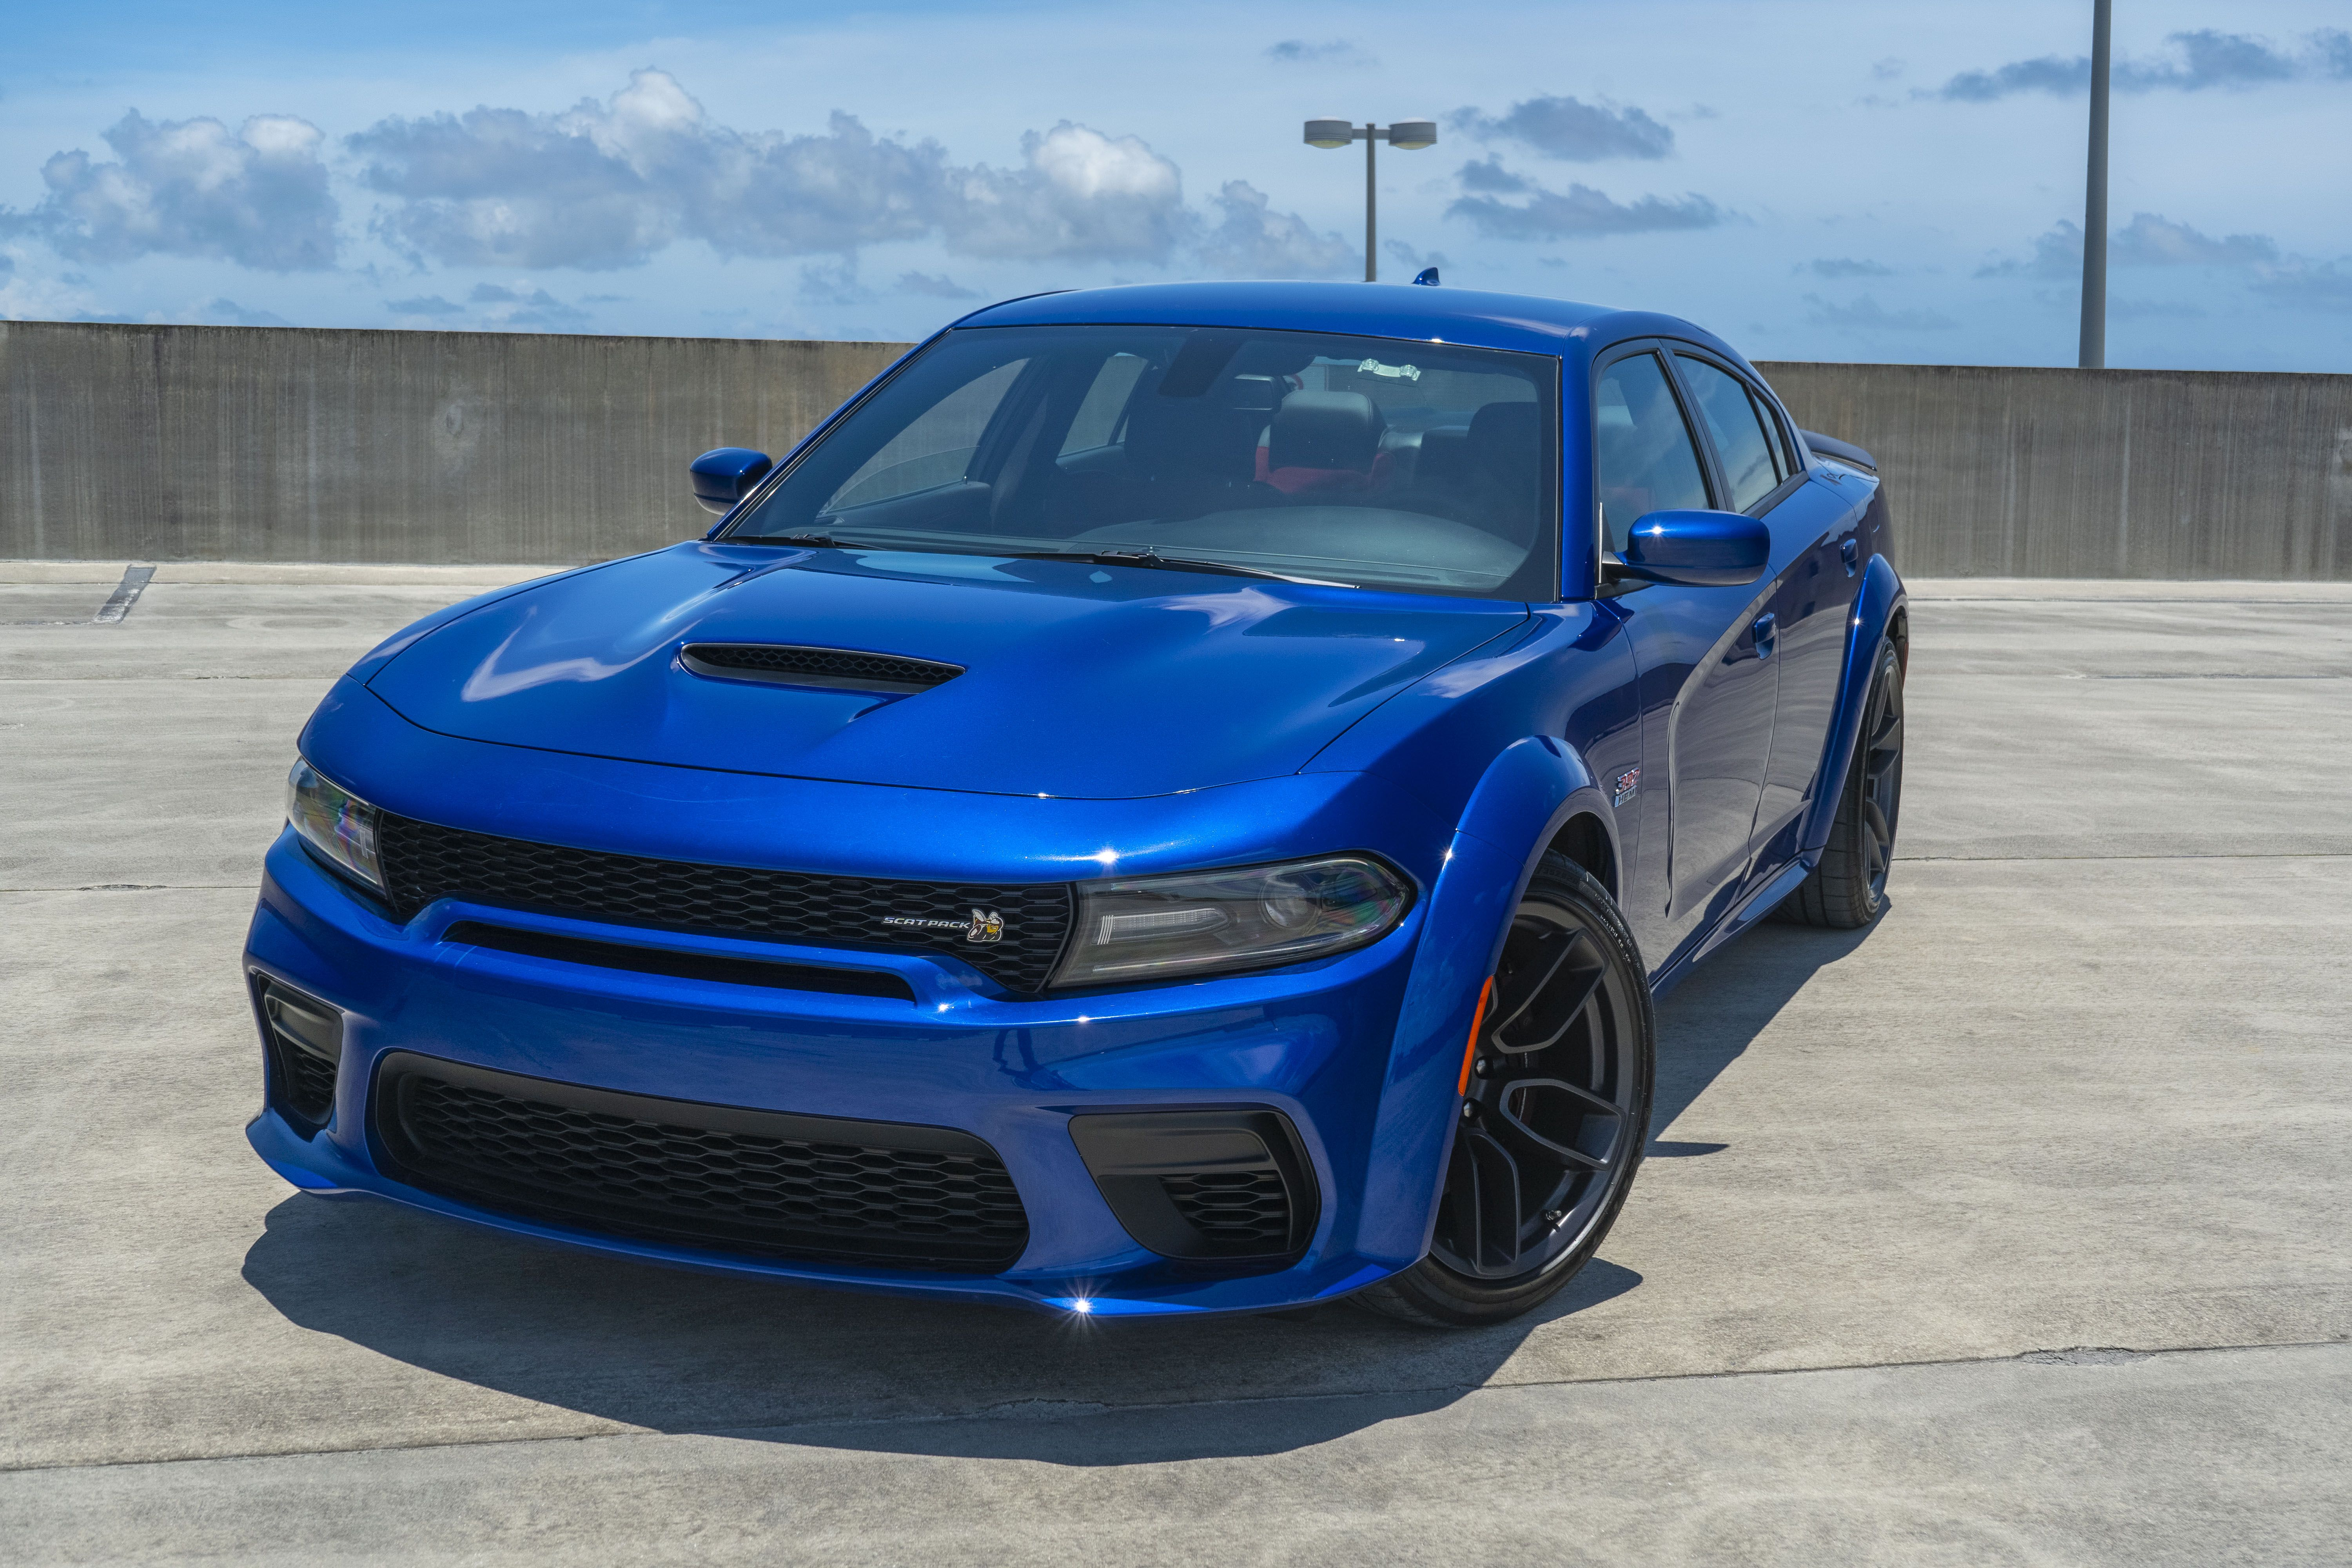 2020 Dodge Charger 392 Scat Pack Widebody Driven Top Speed In 2020 Dodge Charger Scat Pack Dodge